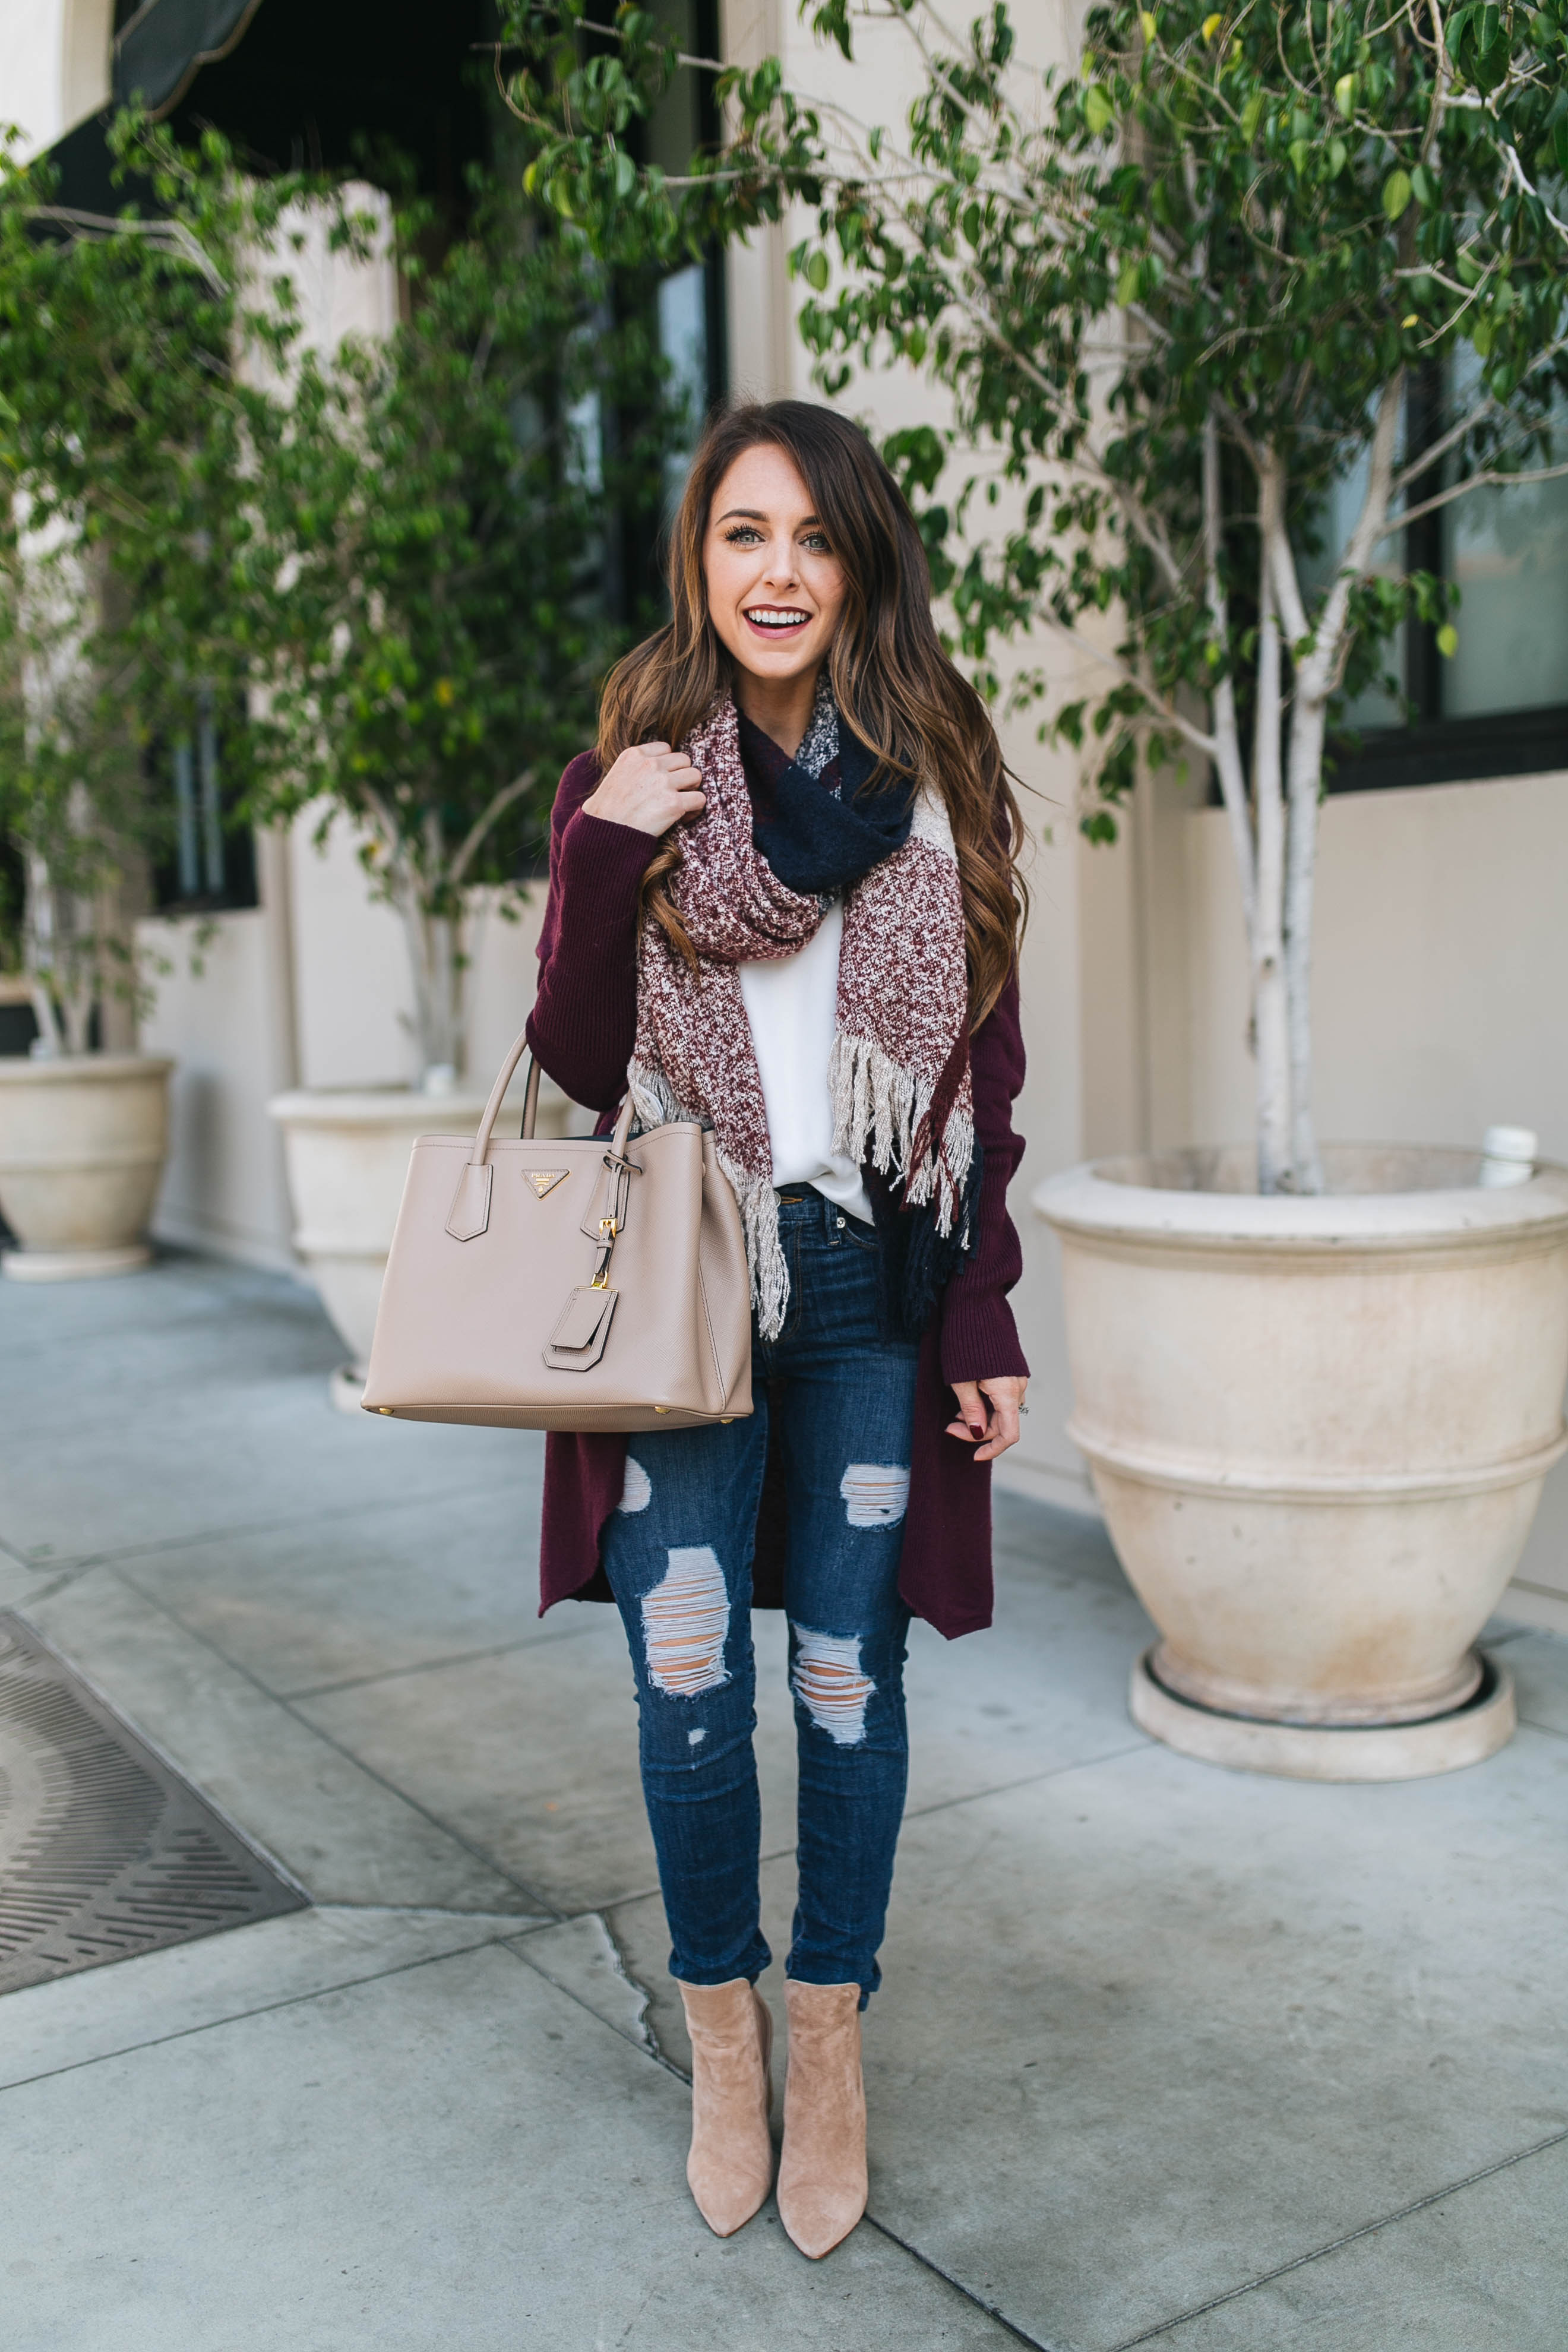 Style blogger Daryl-Ann Denner shares the best cardigan under $100 with cozy scarf, ripped Good American jeans, and Prada Double bag